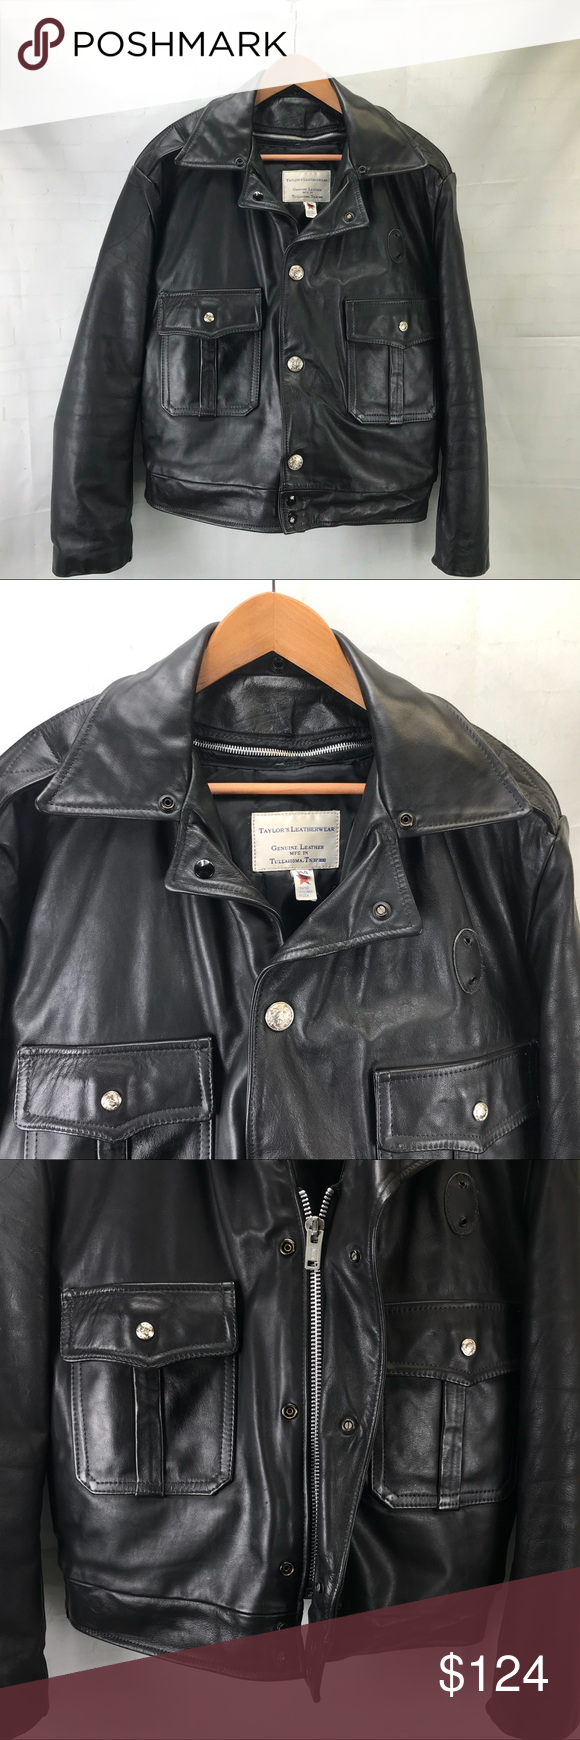 Taylors Leatherwear Police Leather Heavy Jacket Heavy